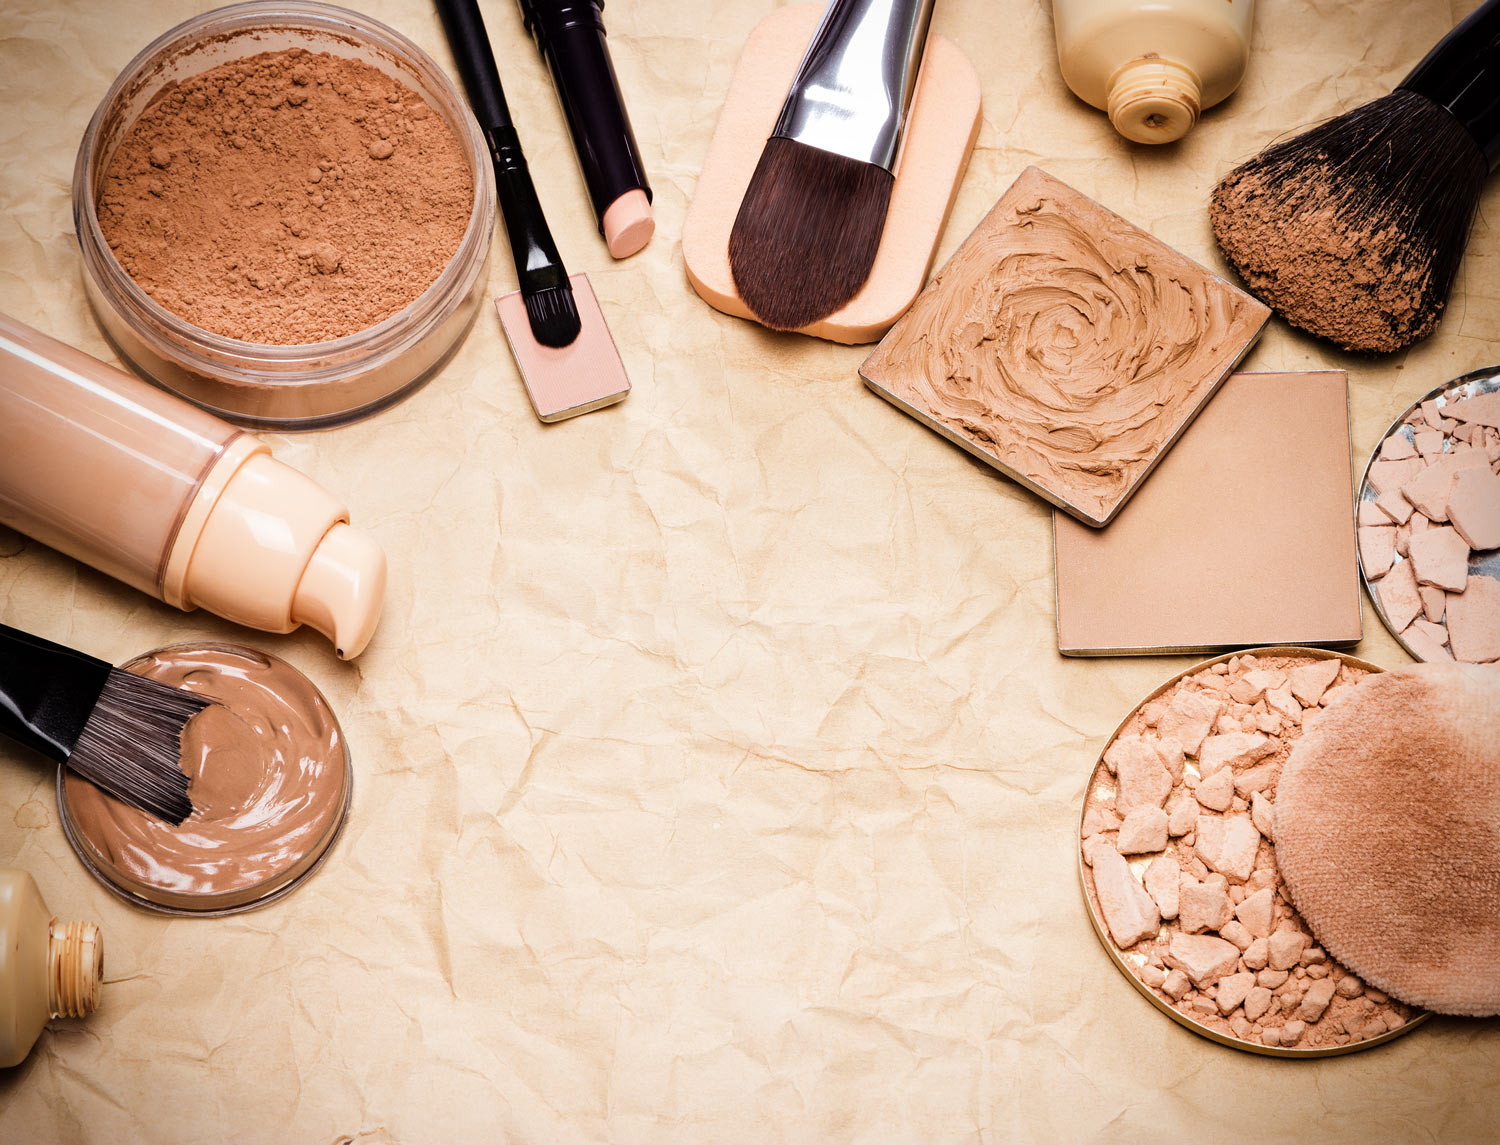 Makeup for Weddings - Foundation